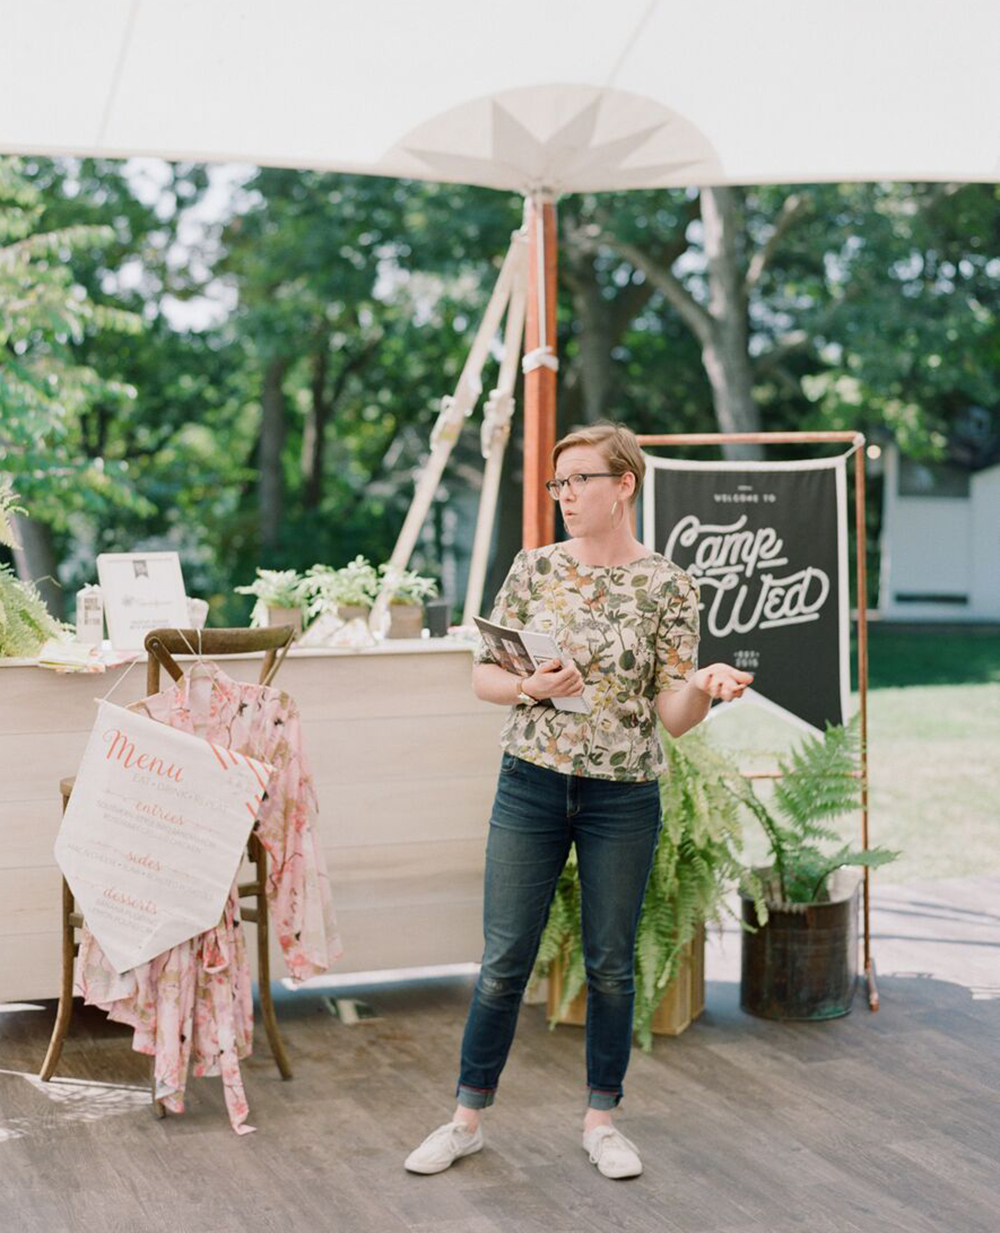 Spoonflower team member Katie shared different ways wedding planners could incorporate Spoonflower with their clients! | Spoonflower Blog